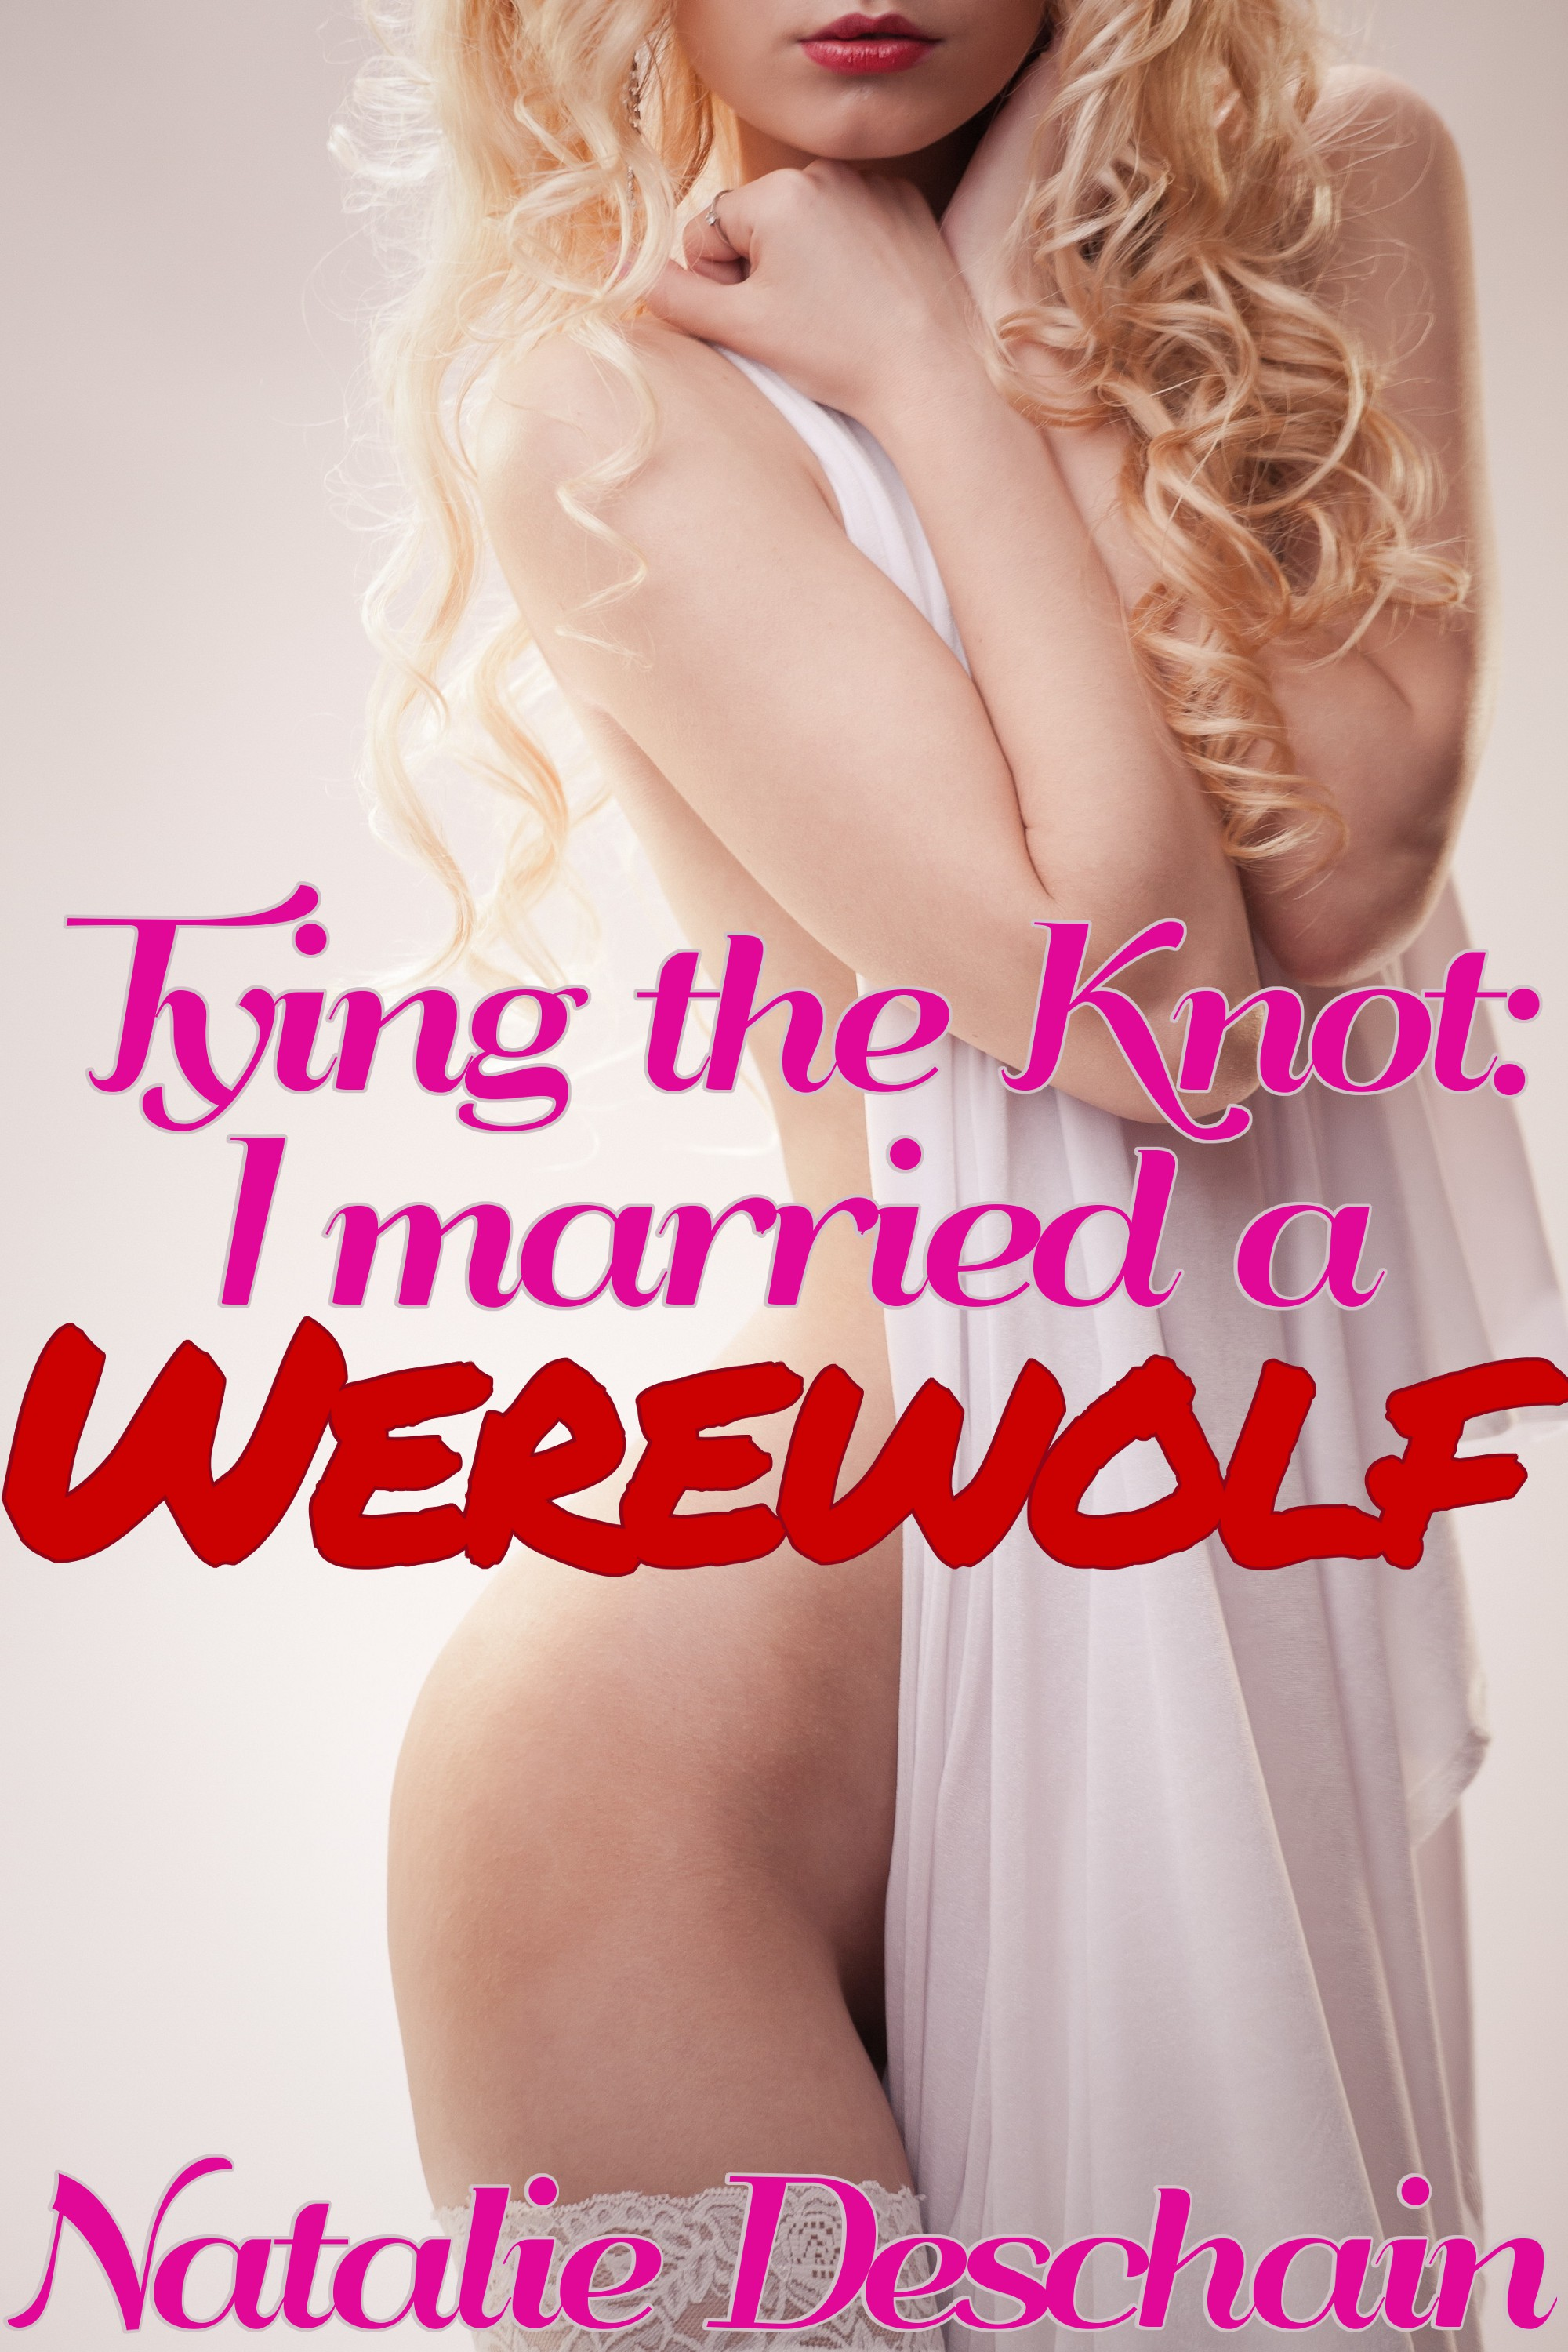 Natalie Deschain - Tying the Knot: I Married a Werewolf! (Monster Breeding Erotica)